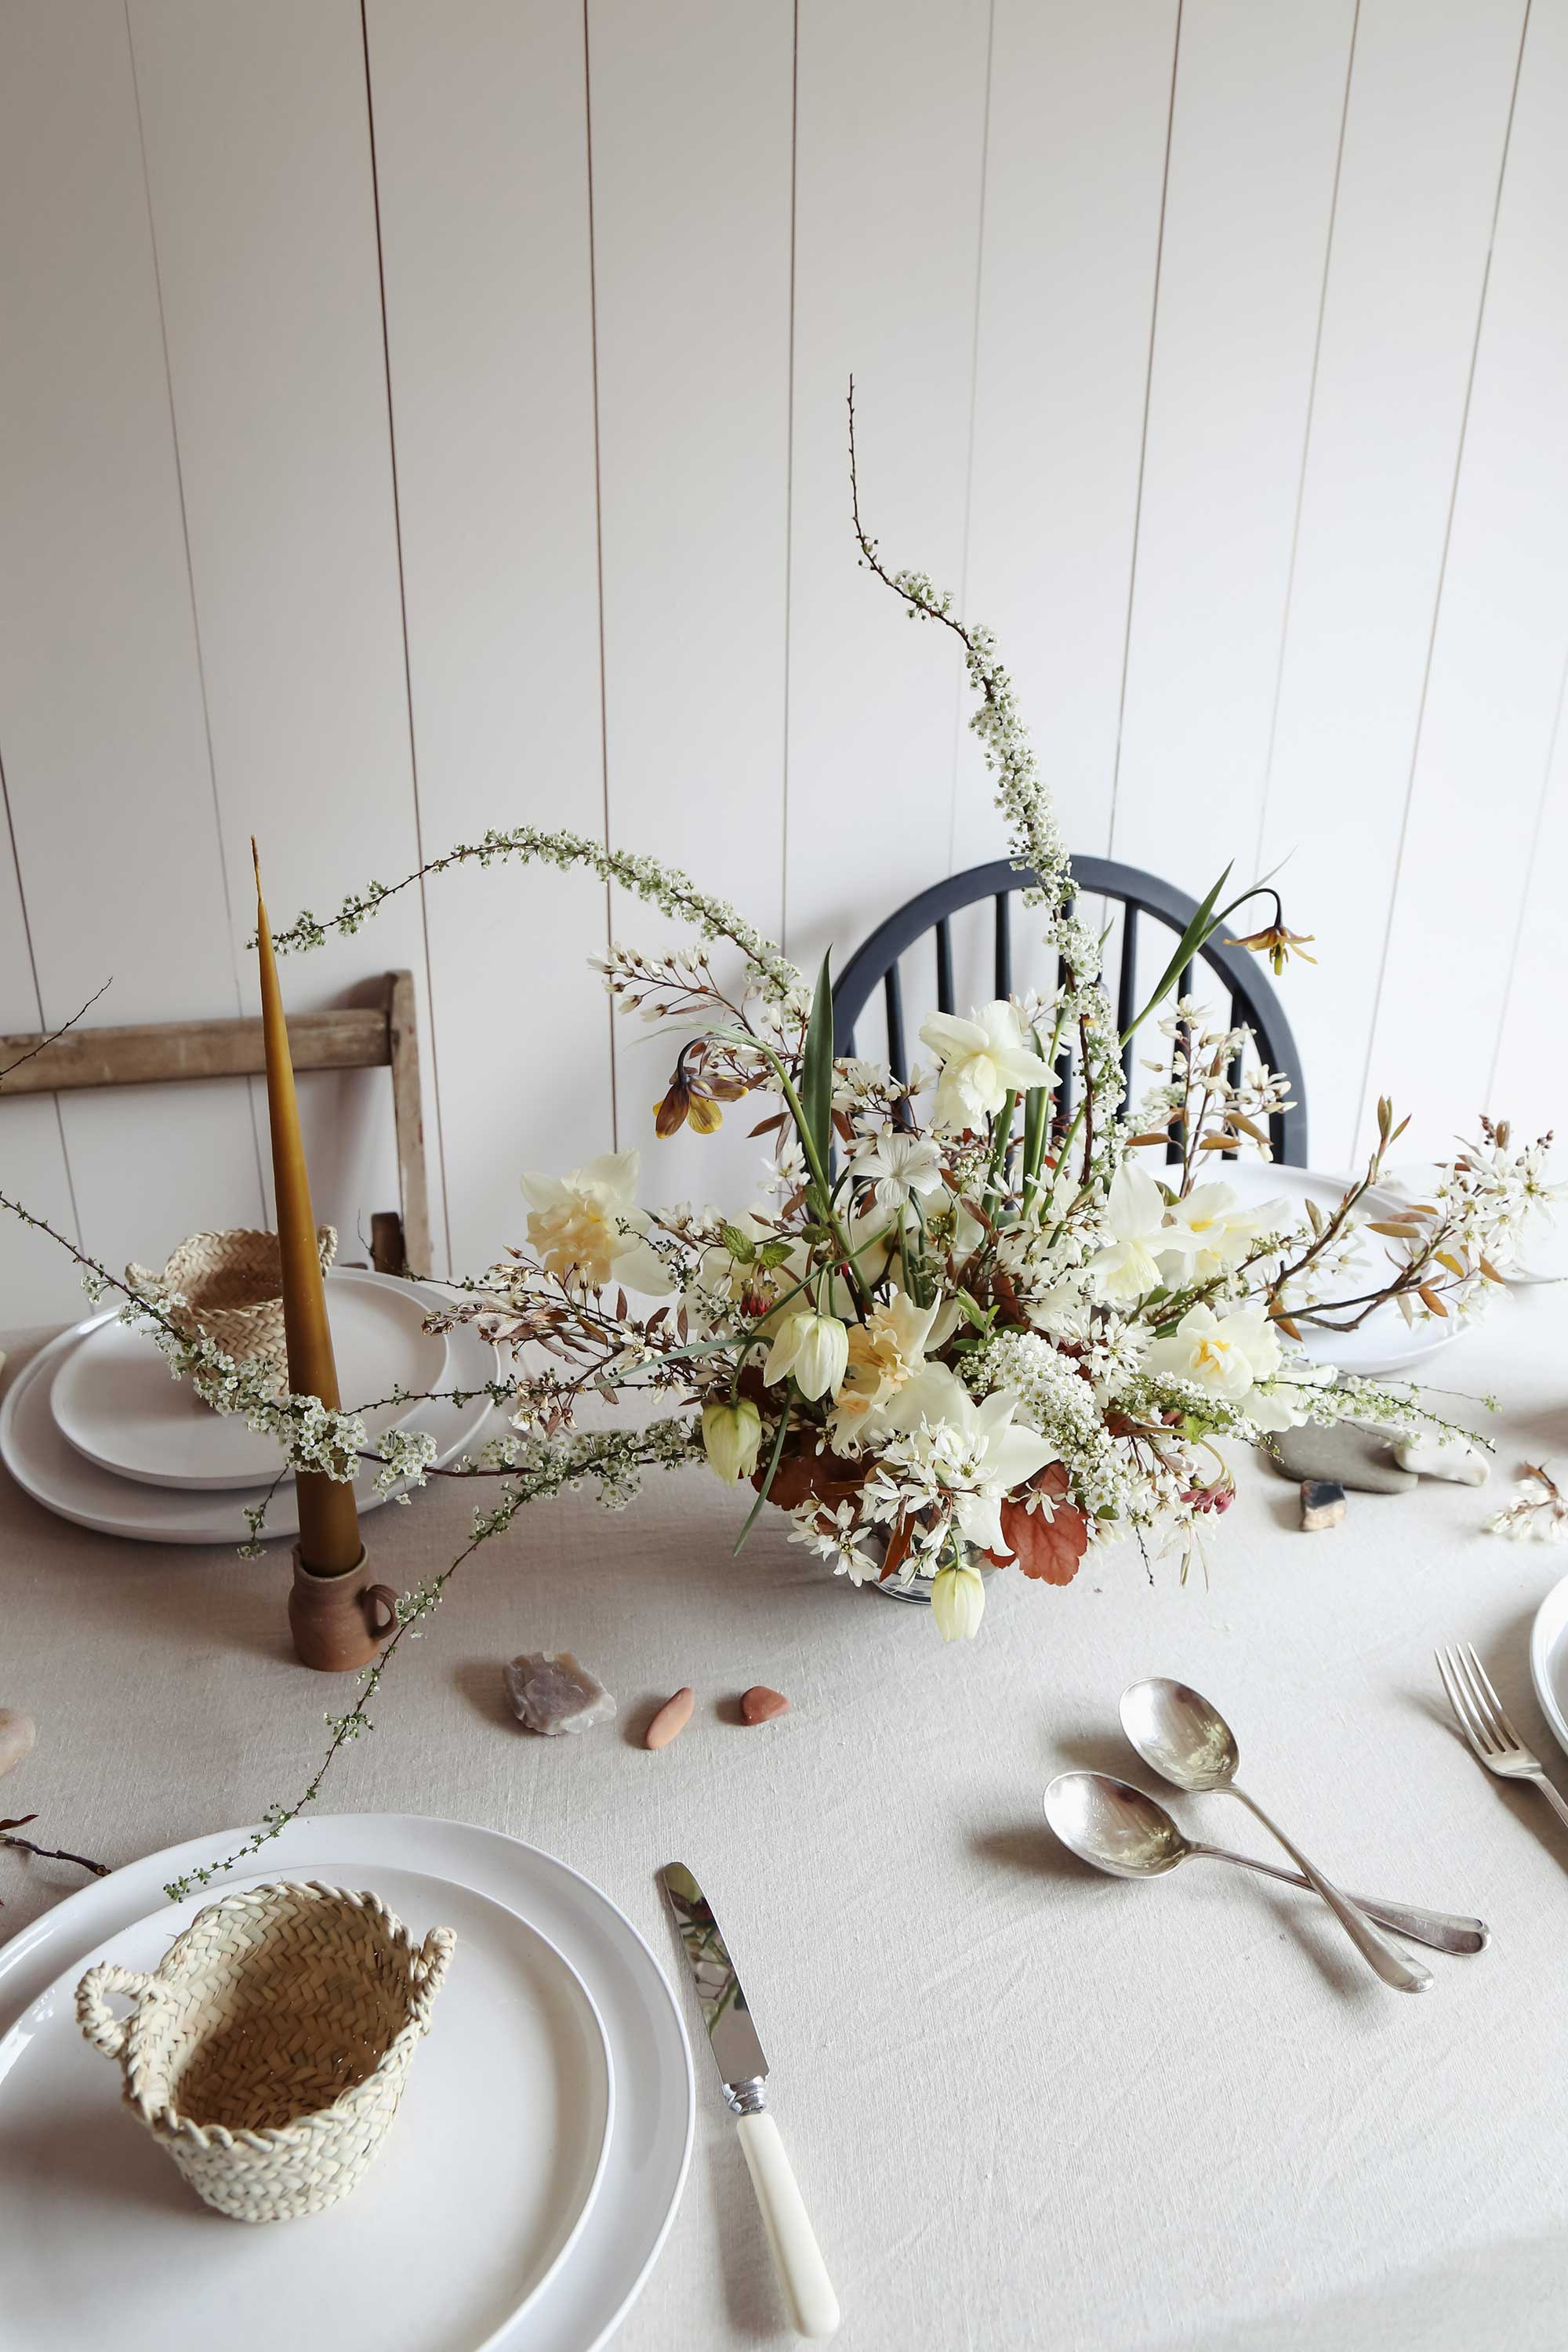 vervain-spring-wedding-flowers-uk-tablecentre-smaller01.jpg